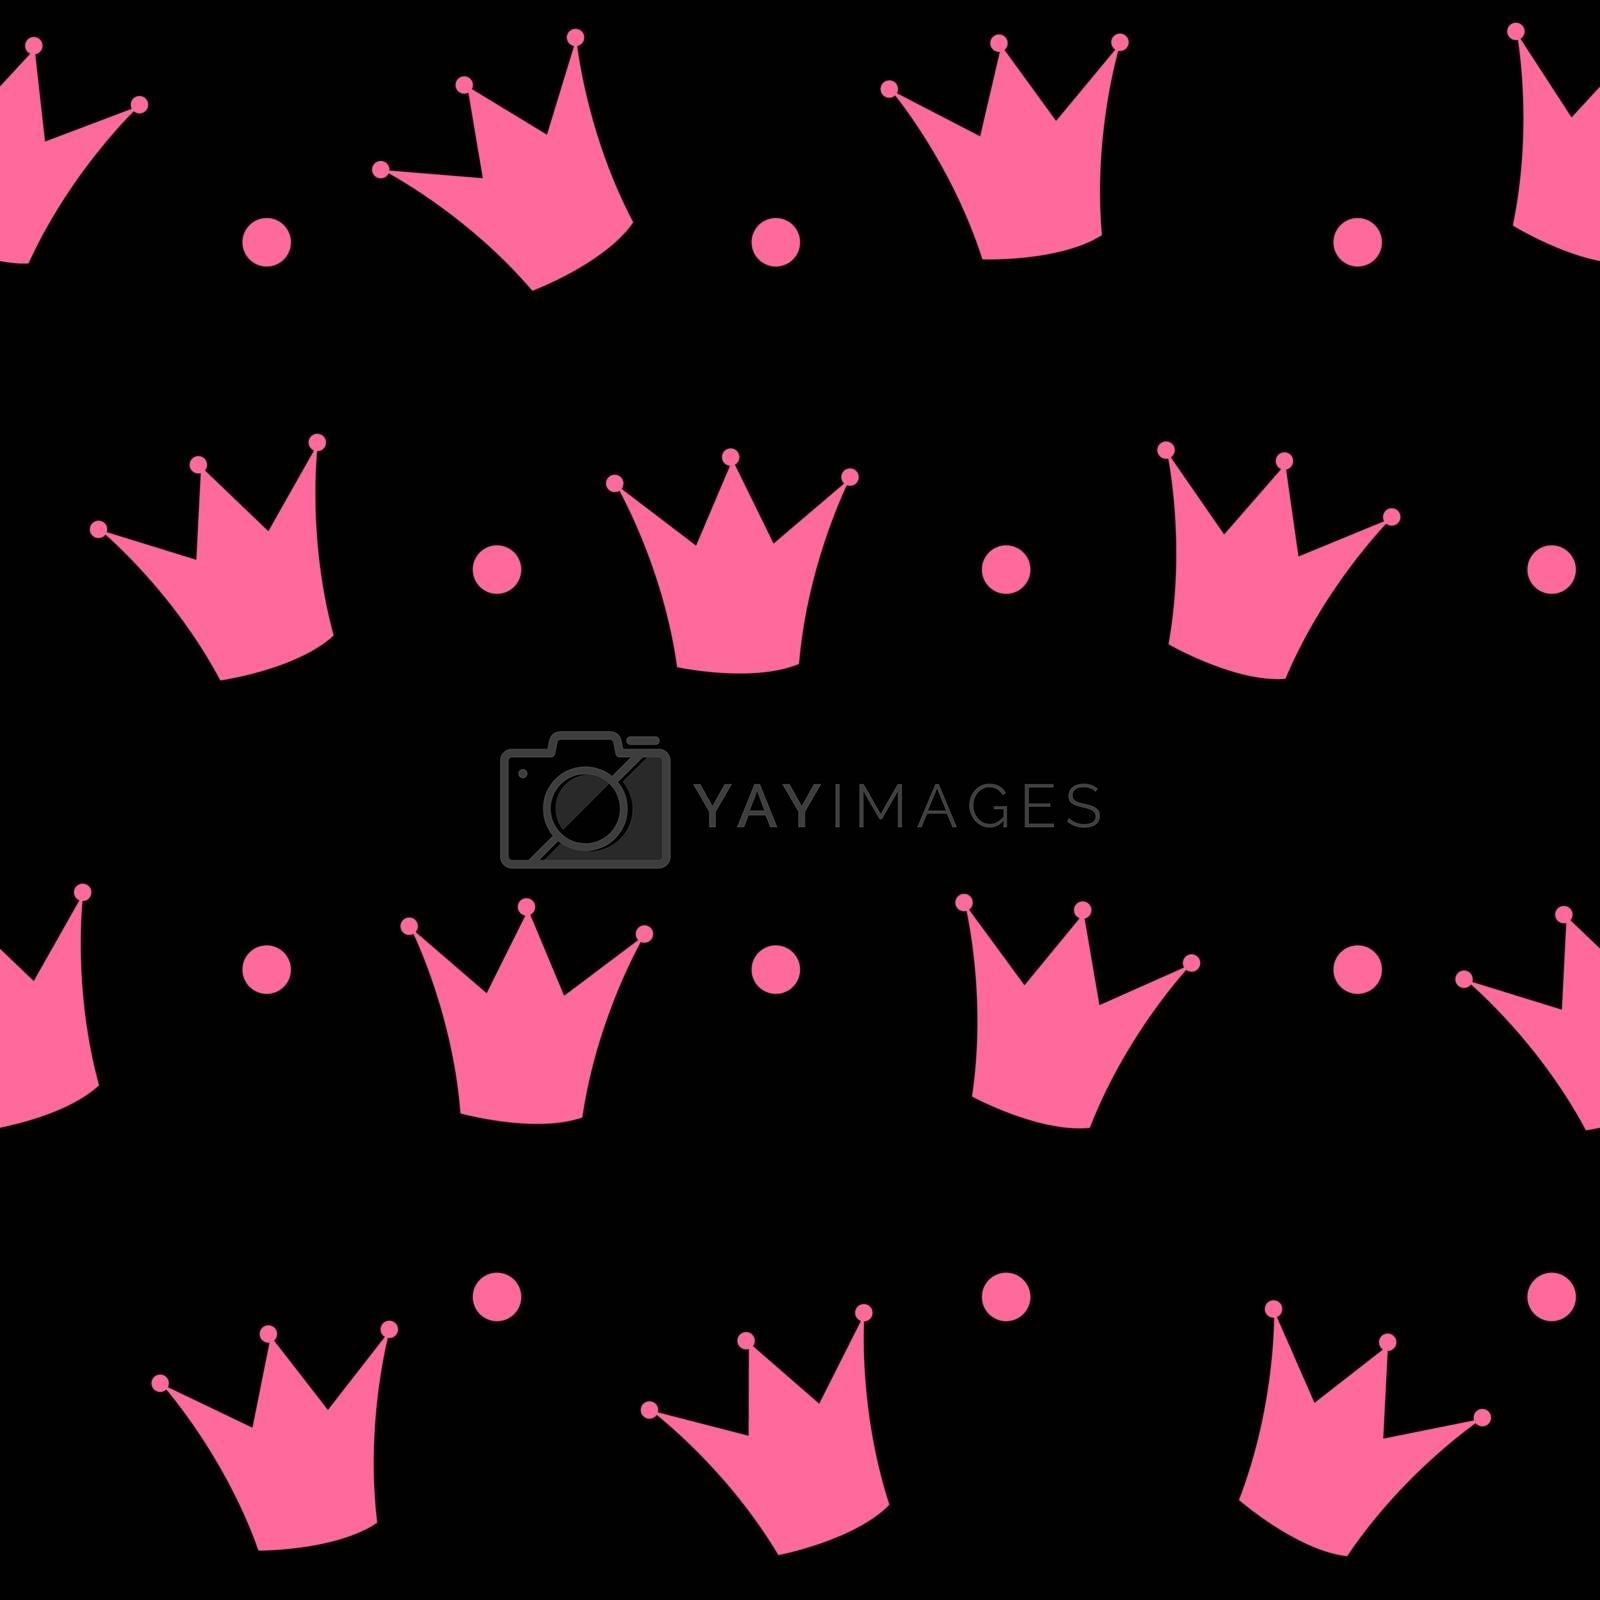 Princess Crown Seamless Pattern Background Vector Illustration. by yganko